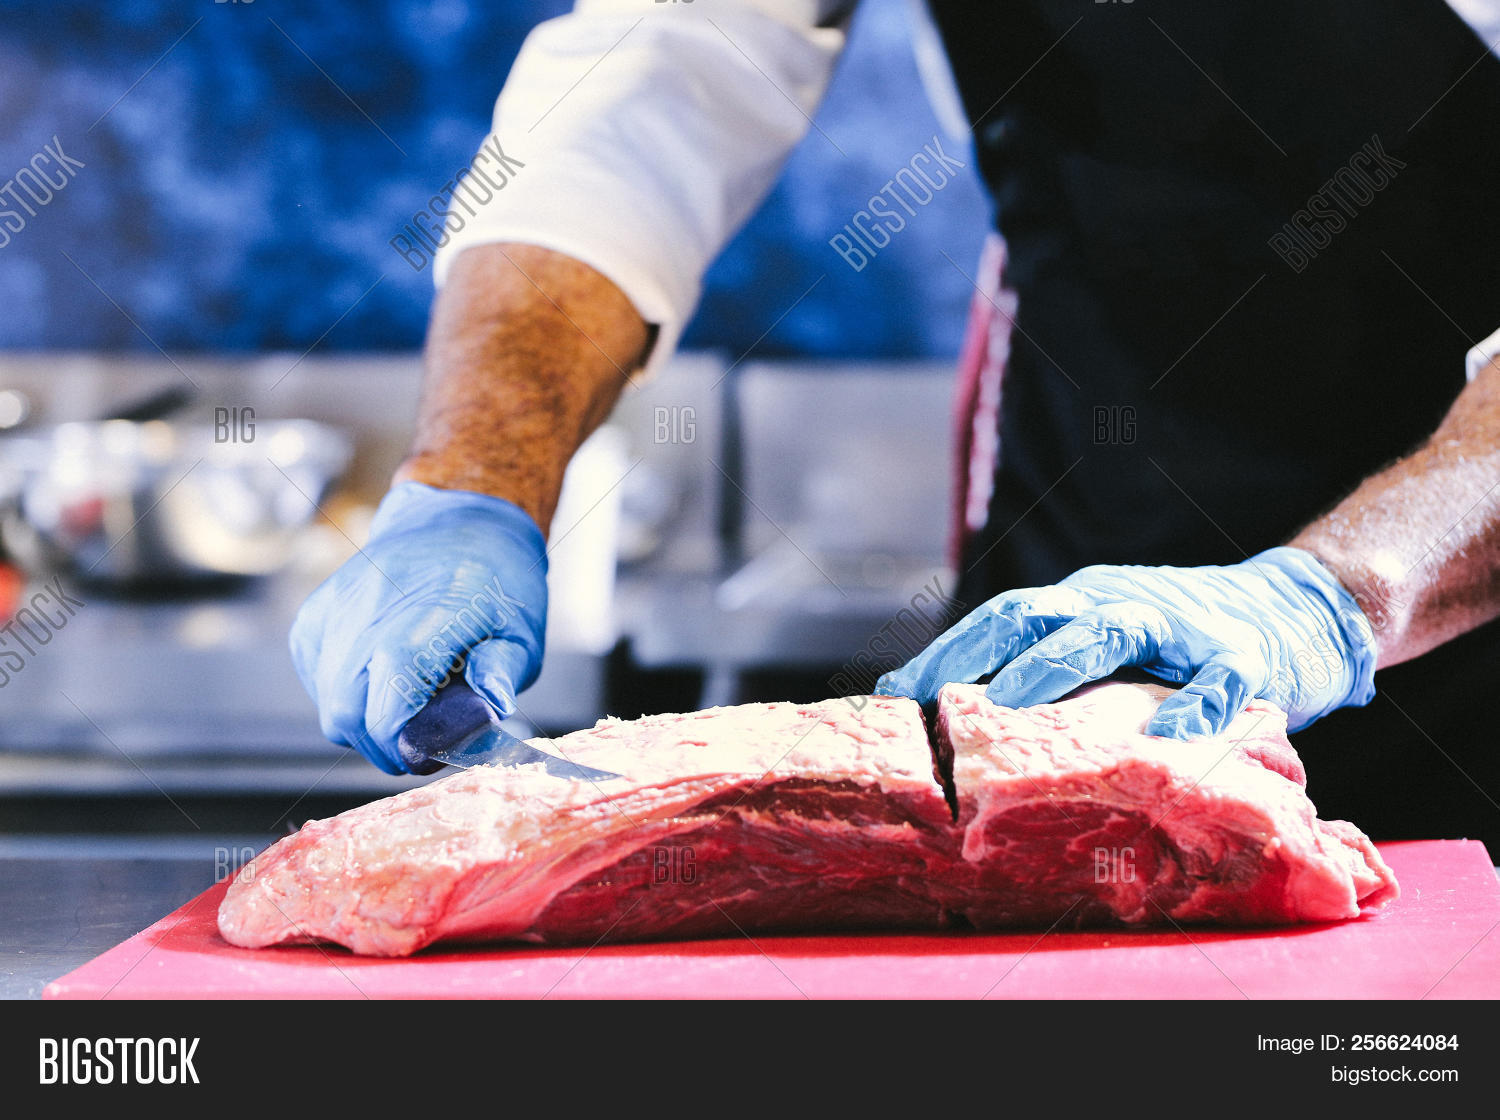 Butcher cutting pork meat on kitchen, Chef cutting fresh raw meat on board, Close up of butcher cutt